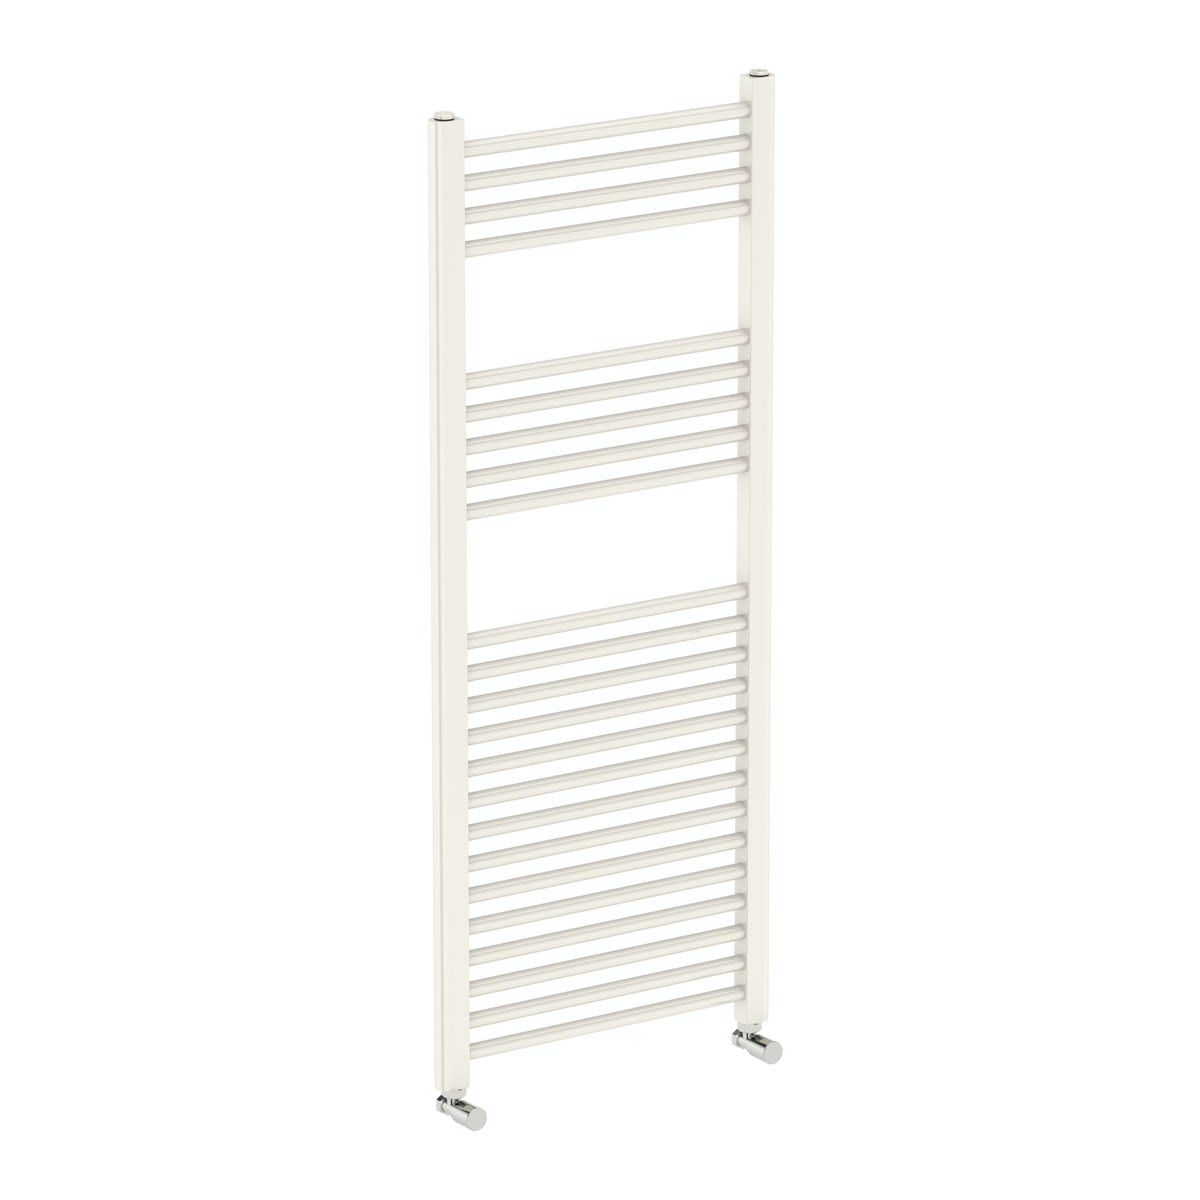 Orchard Eden round white heated towel rail 1200 x 490